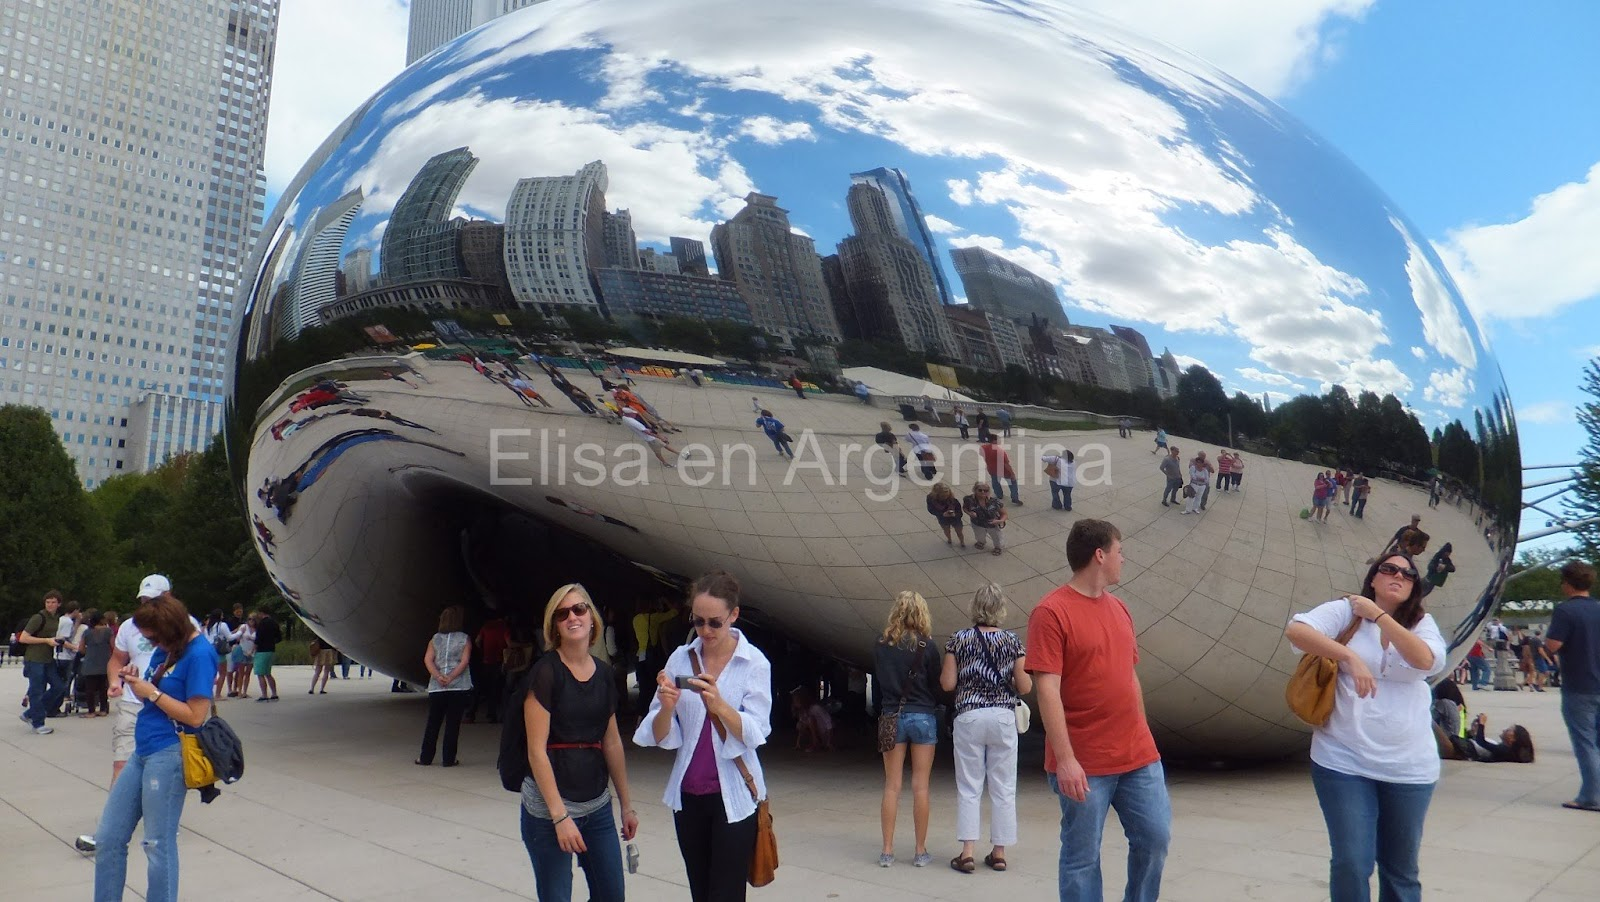 The Bean, Millenium Park, Chicago